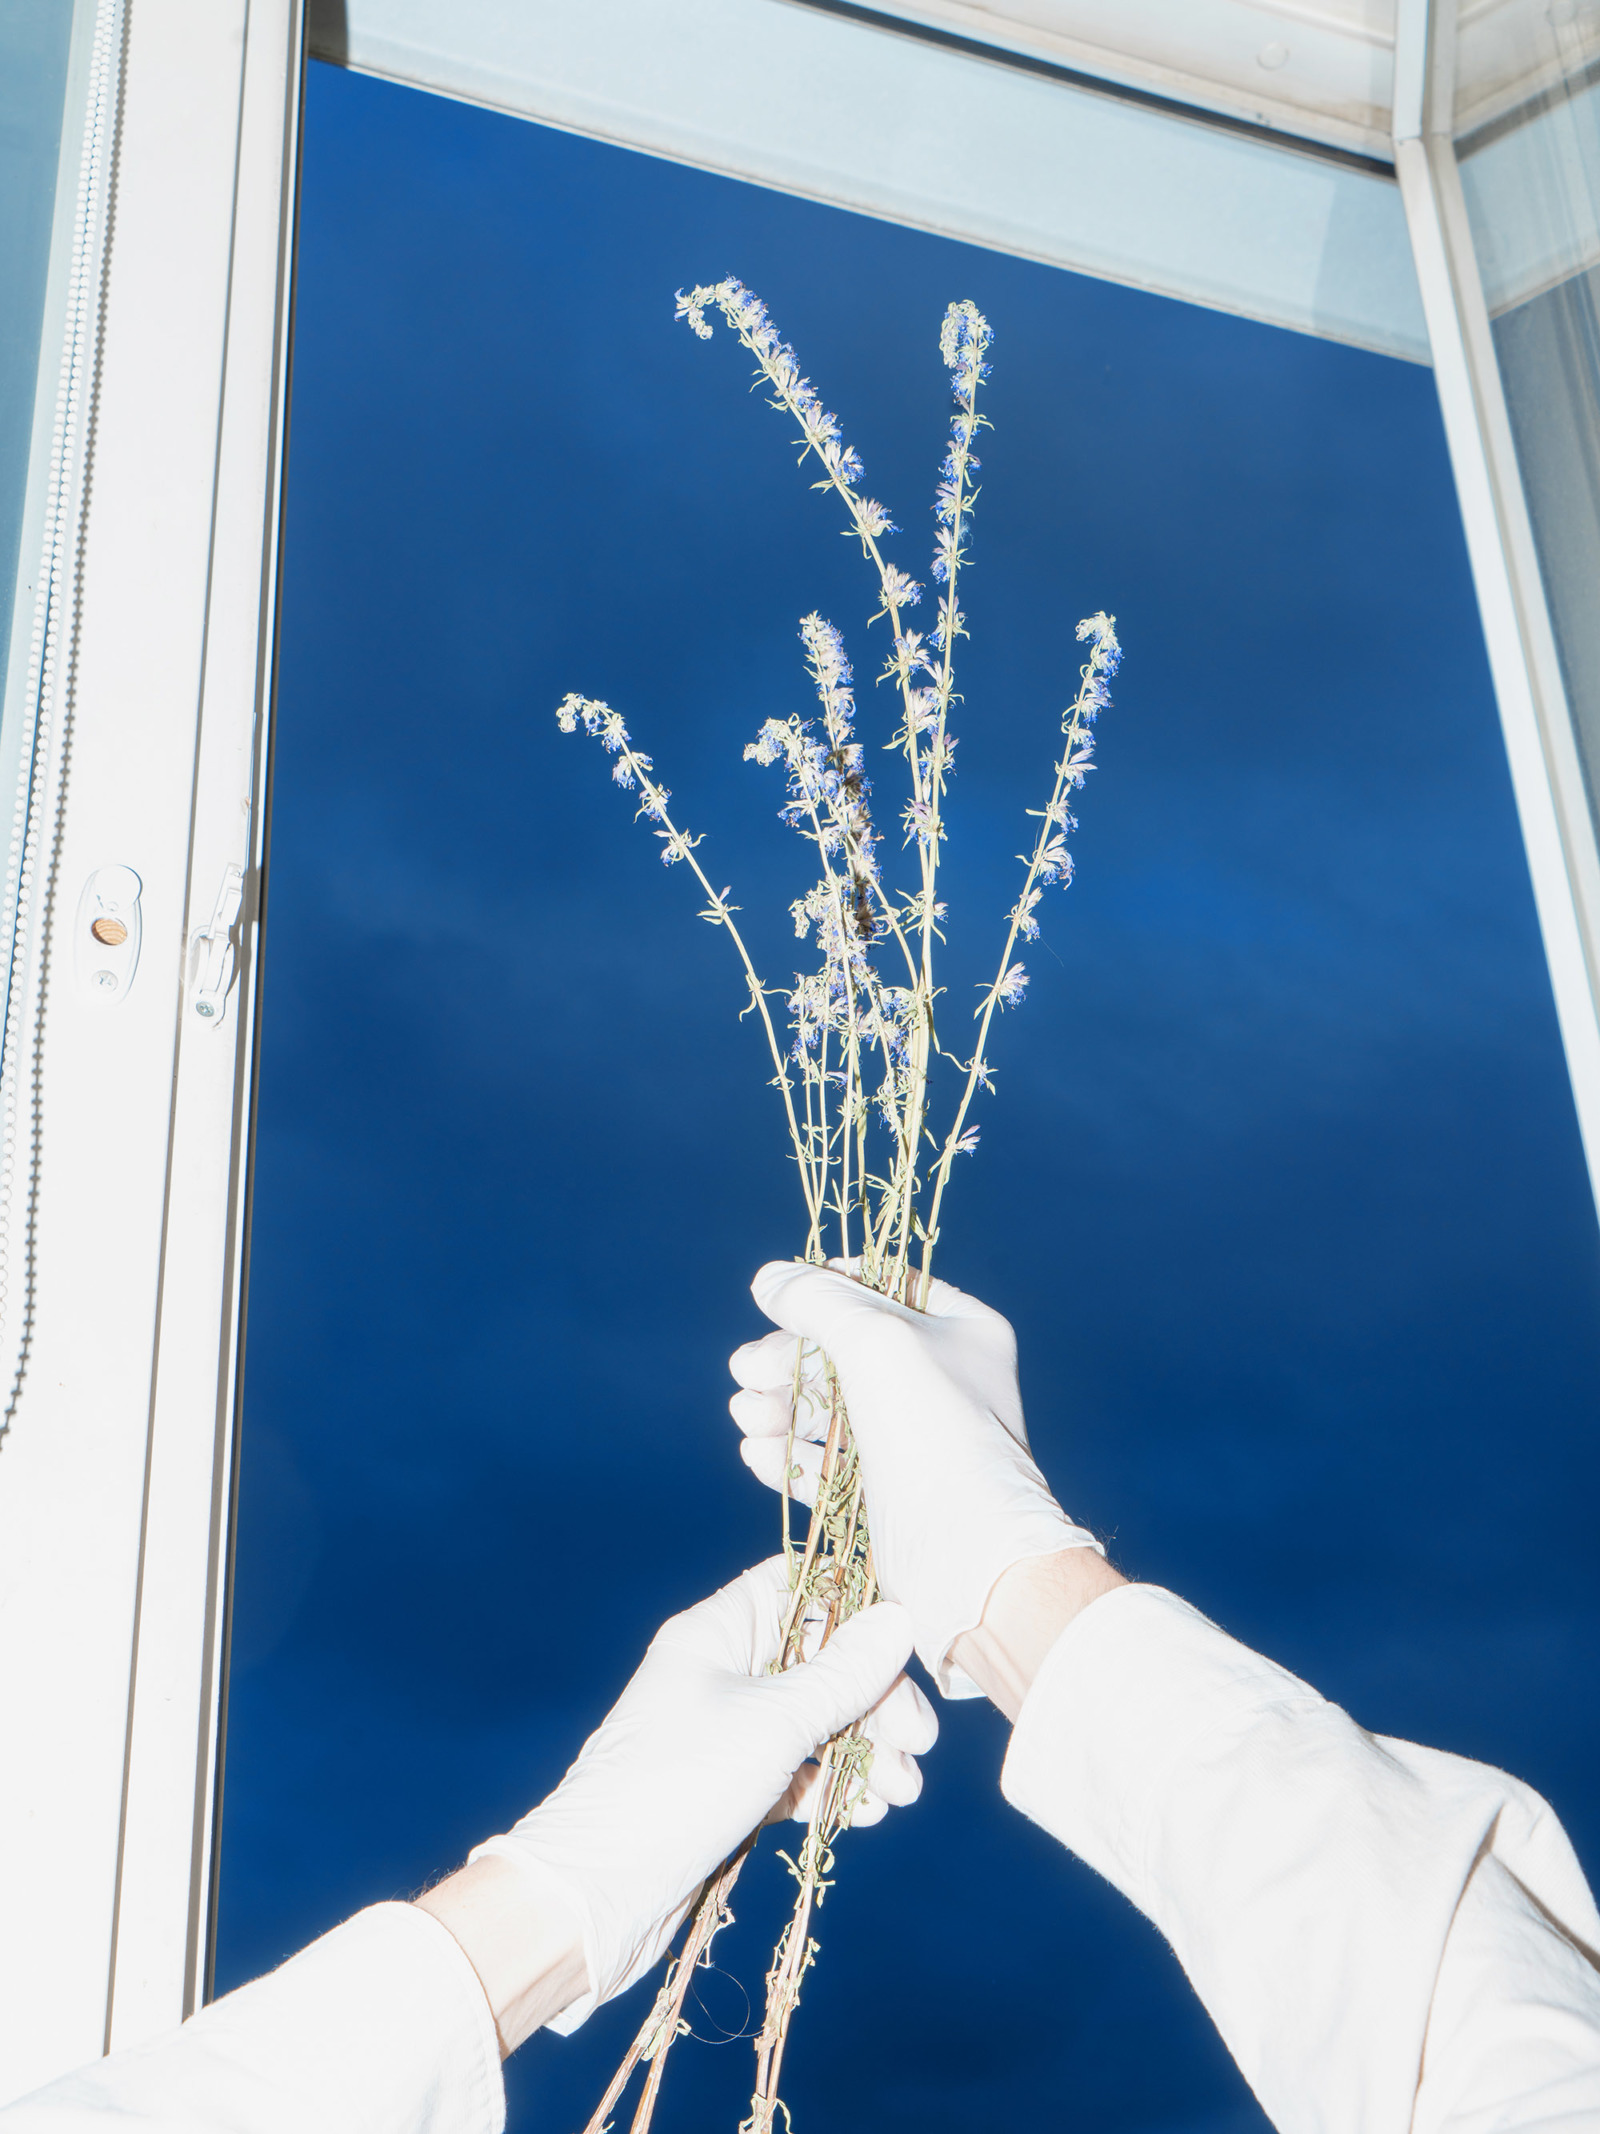 A pair of gloves hands hold up branches to the dark, blue sky.